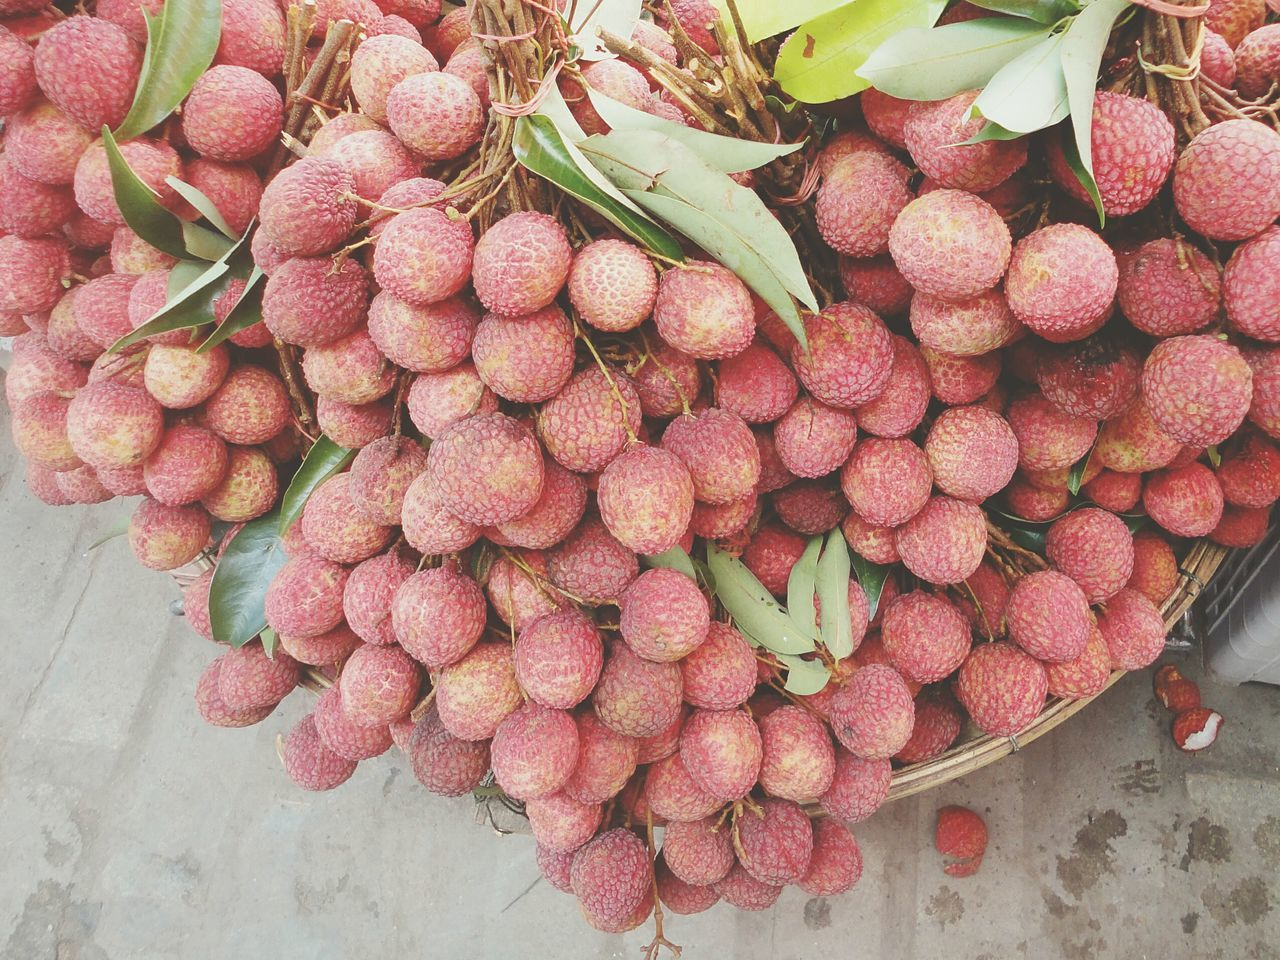 fruit, food, food and drink, for sale, retail, freshness, abundance, healthy eating, large group of objects, market, day, high angle view, outdoors, basket, no people, choice, red, close-up